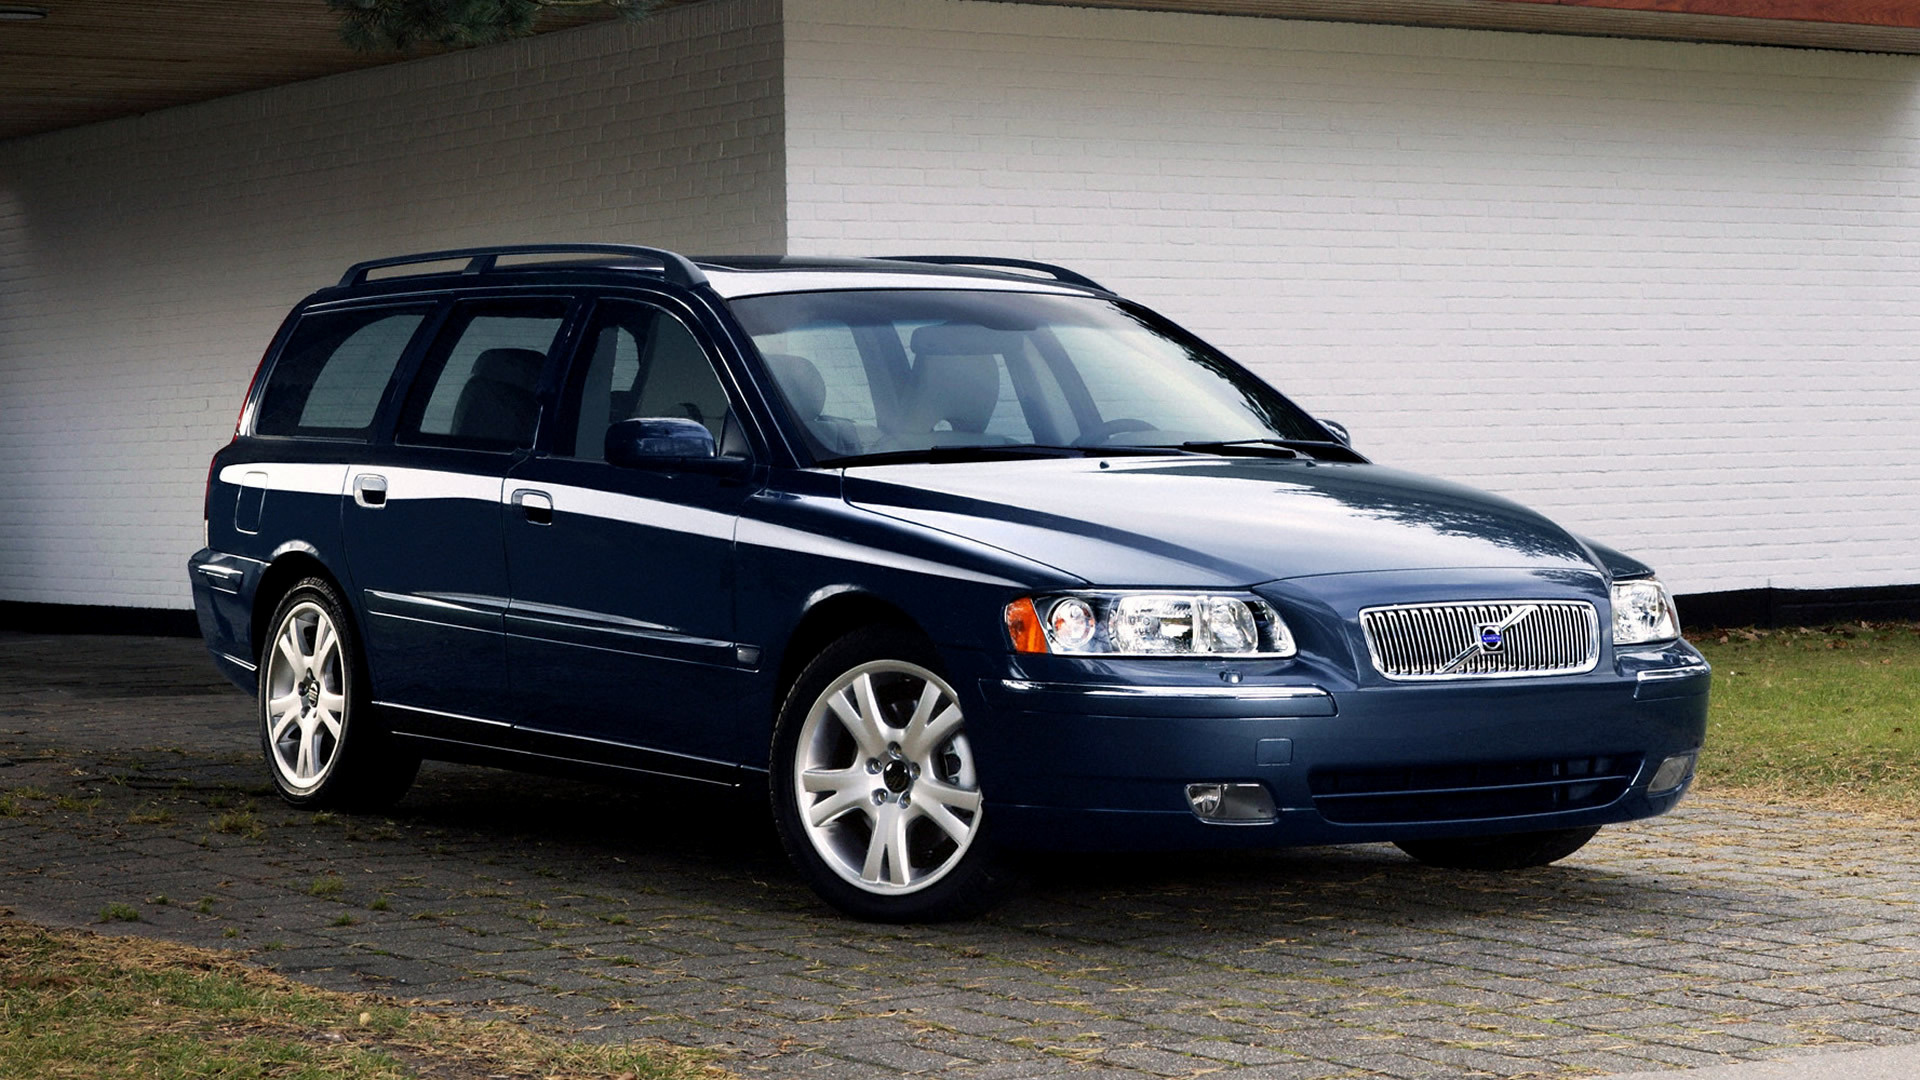 Volvo V70 (2005) Wallpapers and HD Images - Car Pixel